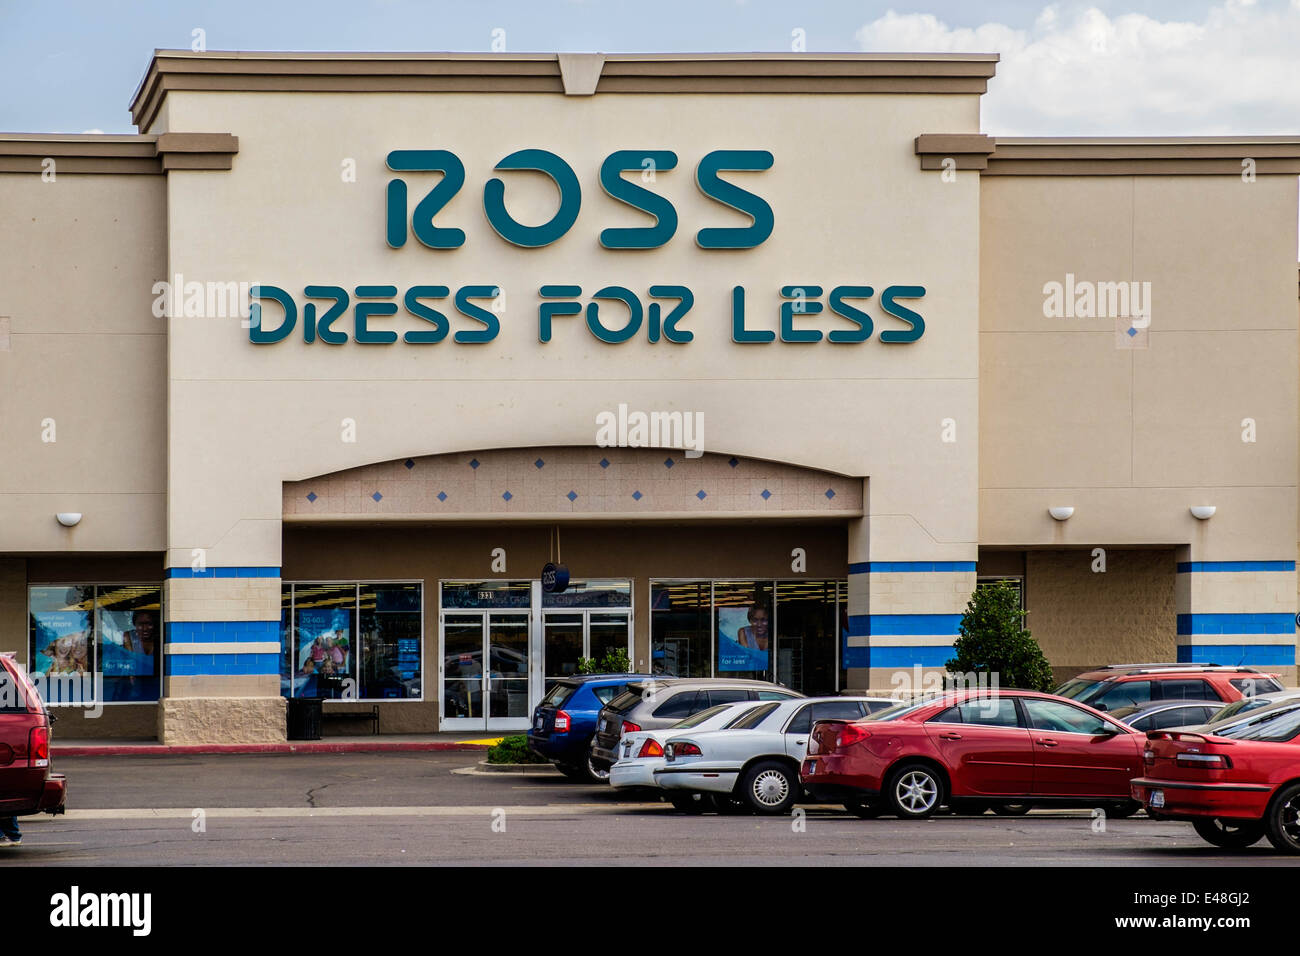 ba0db3c15c8 Betty Ross Stock Photos   Betty Ross Stock Images - Alamy